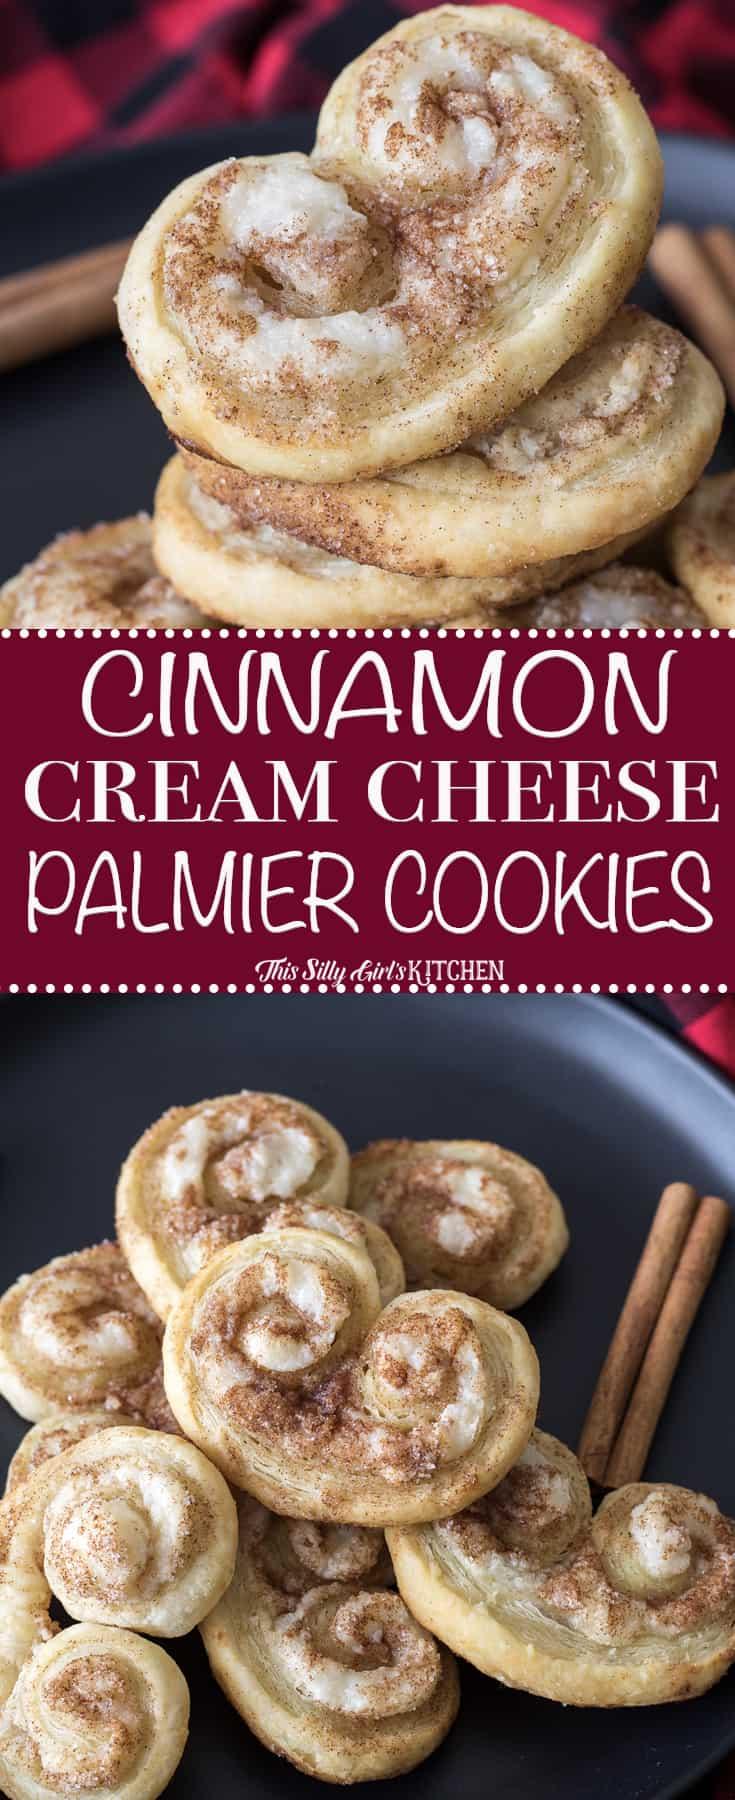 Staked cookies and cookies on black plate pinterest image